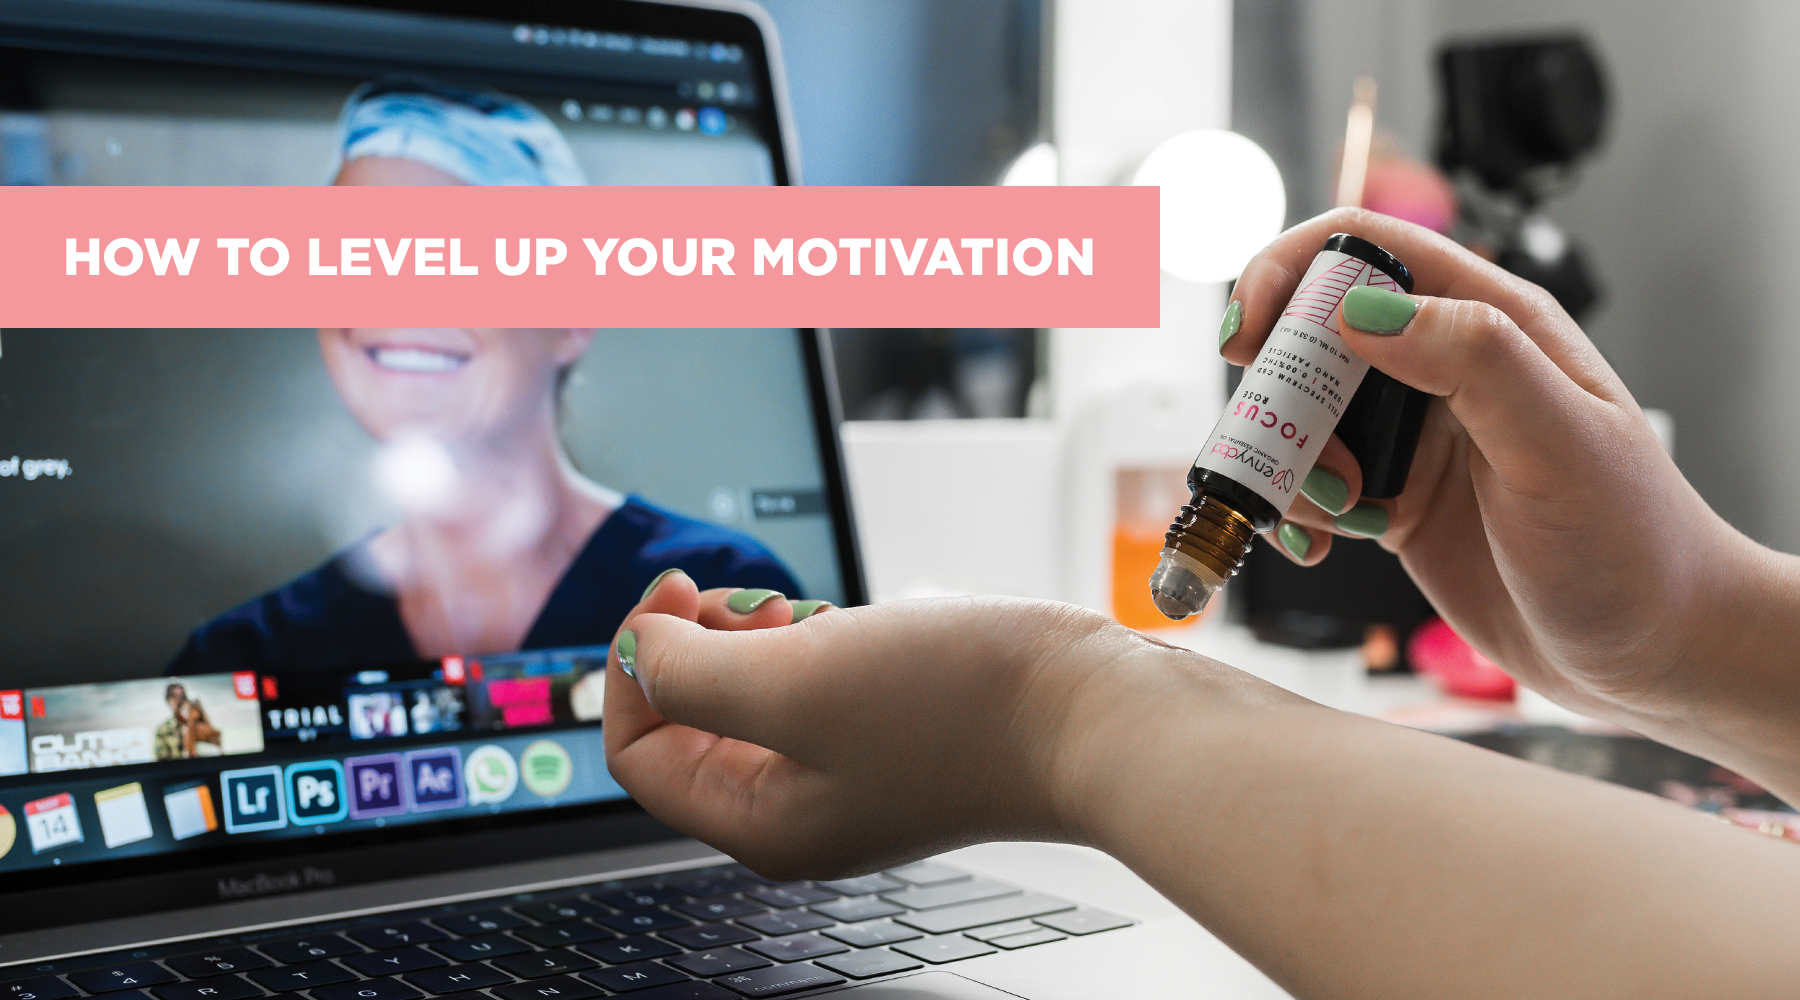 How to Level Up Your Motivation